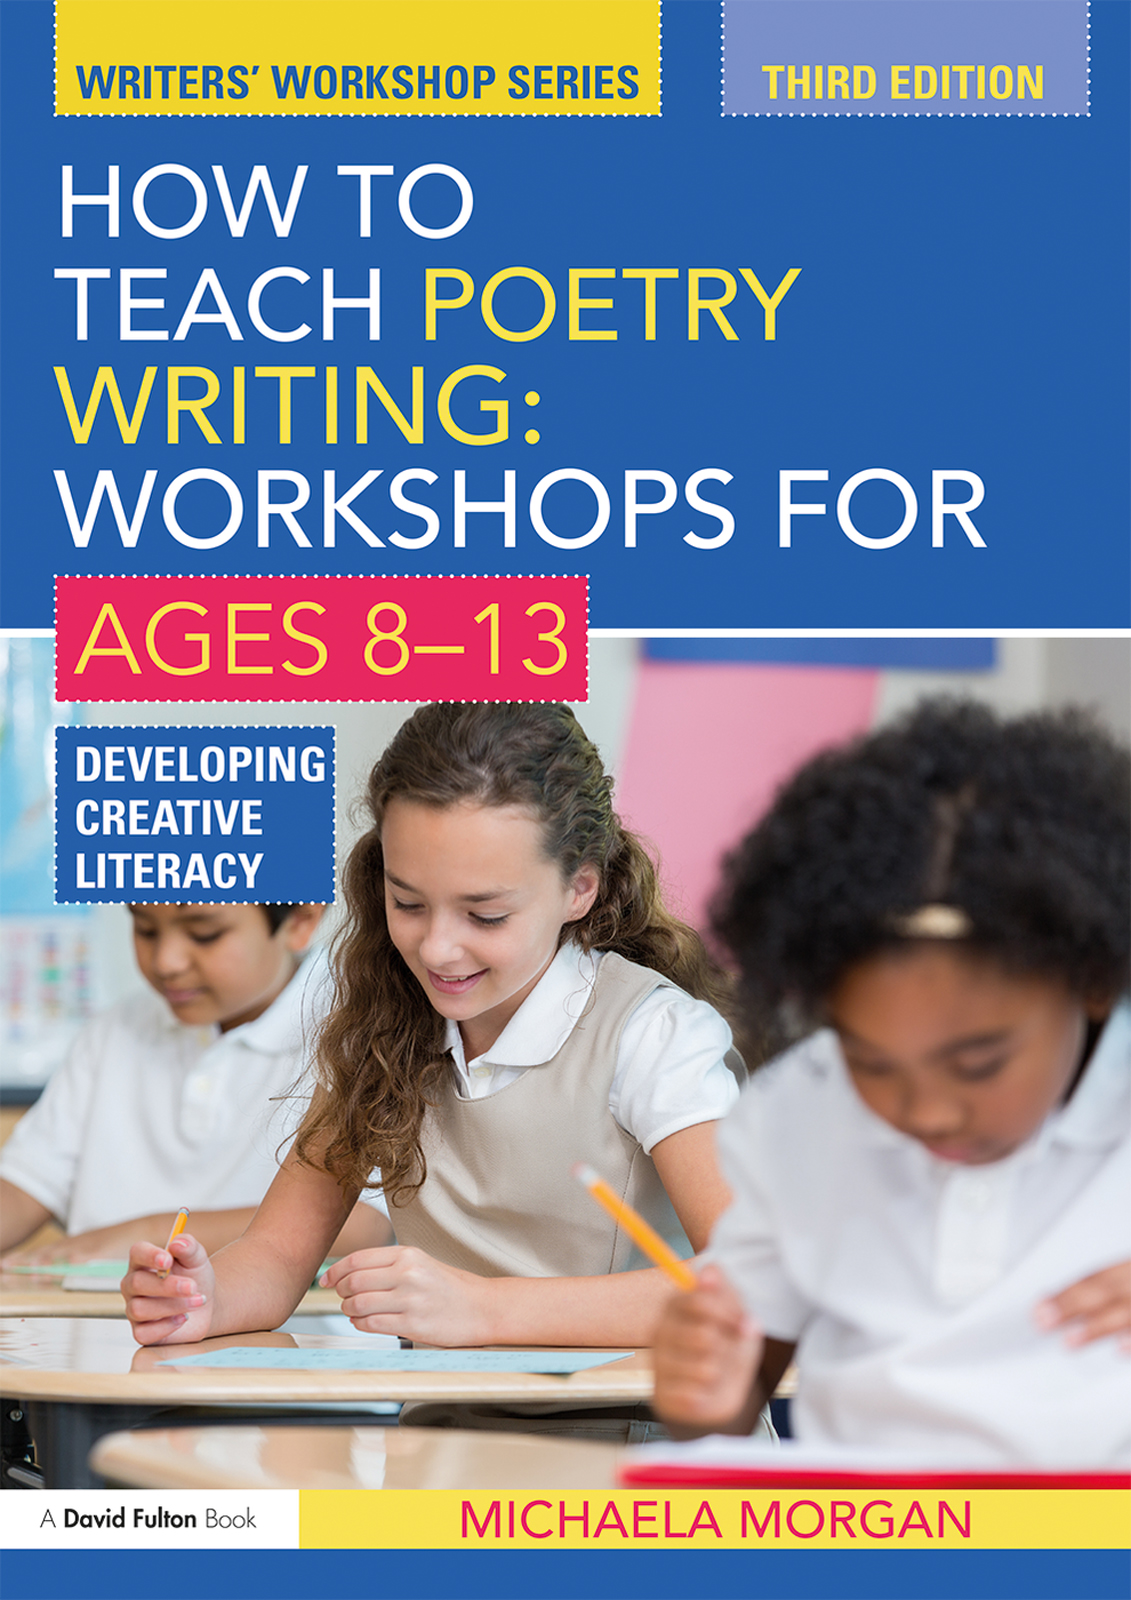 How to Teach Poetry Writing: Workshops for Ages 8-13: Developing Creative Literacy, 3rd Edition (Paperback) book cover